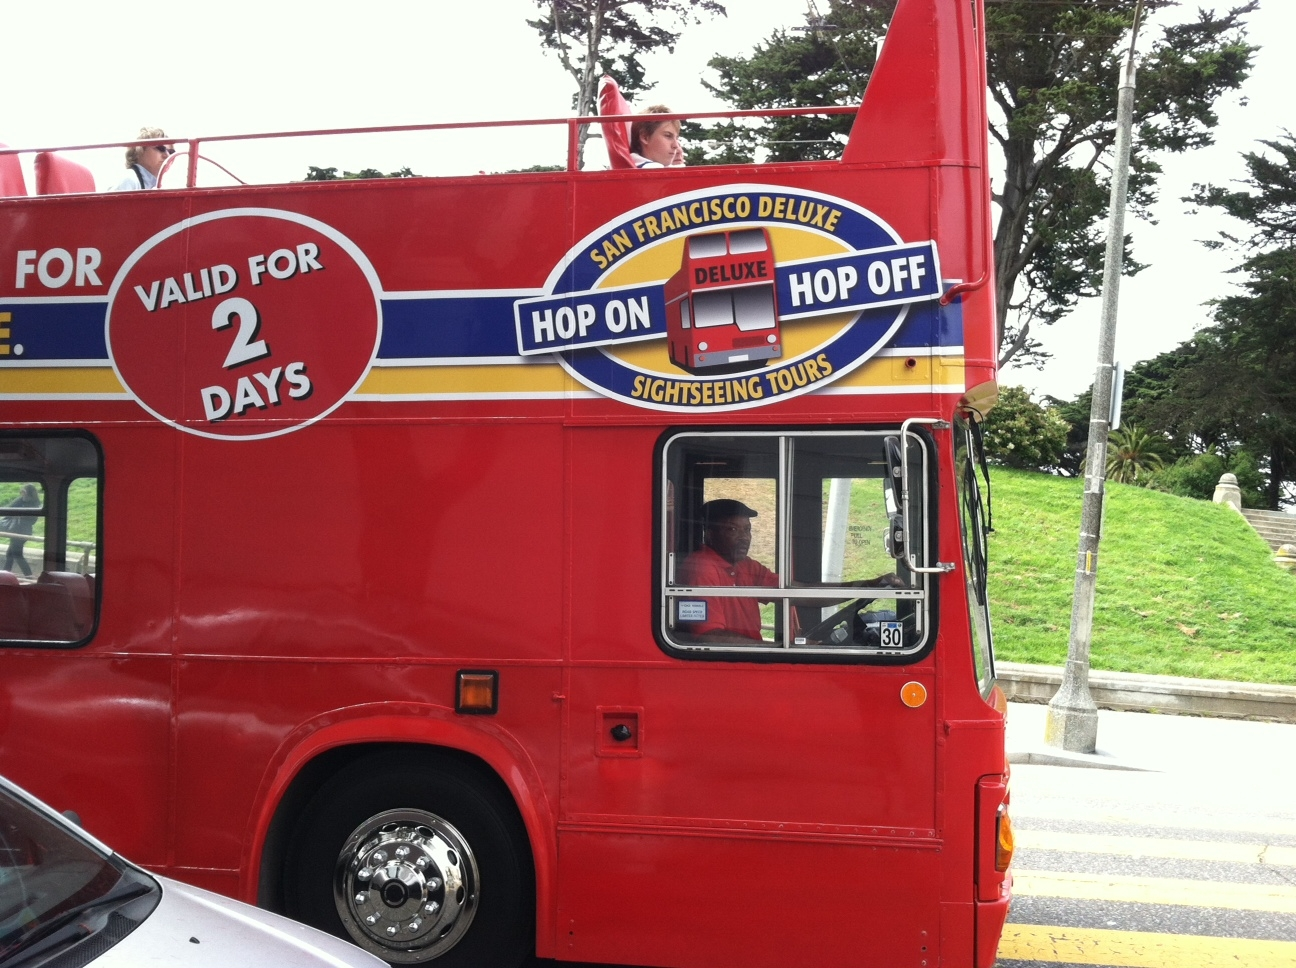 Tour Bus Hearing Fri Aug 16 9am Alamo Square